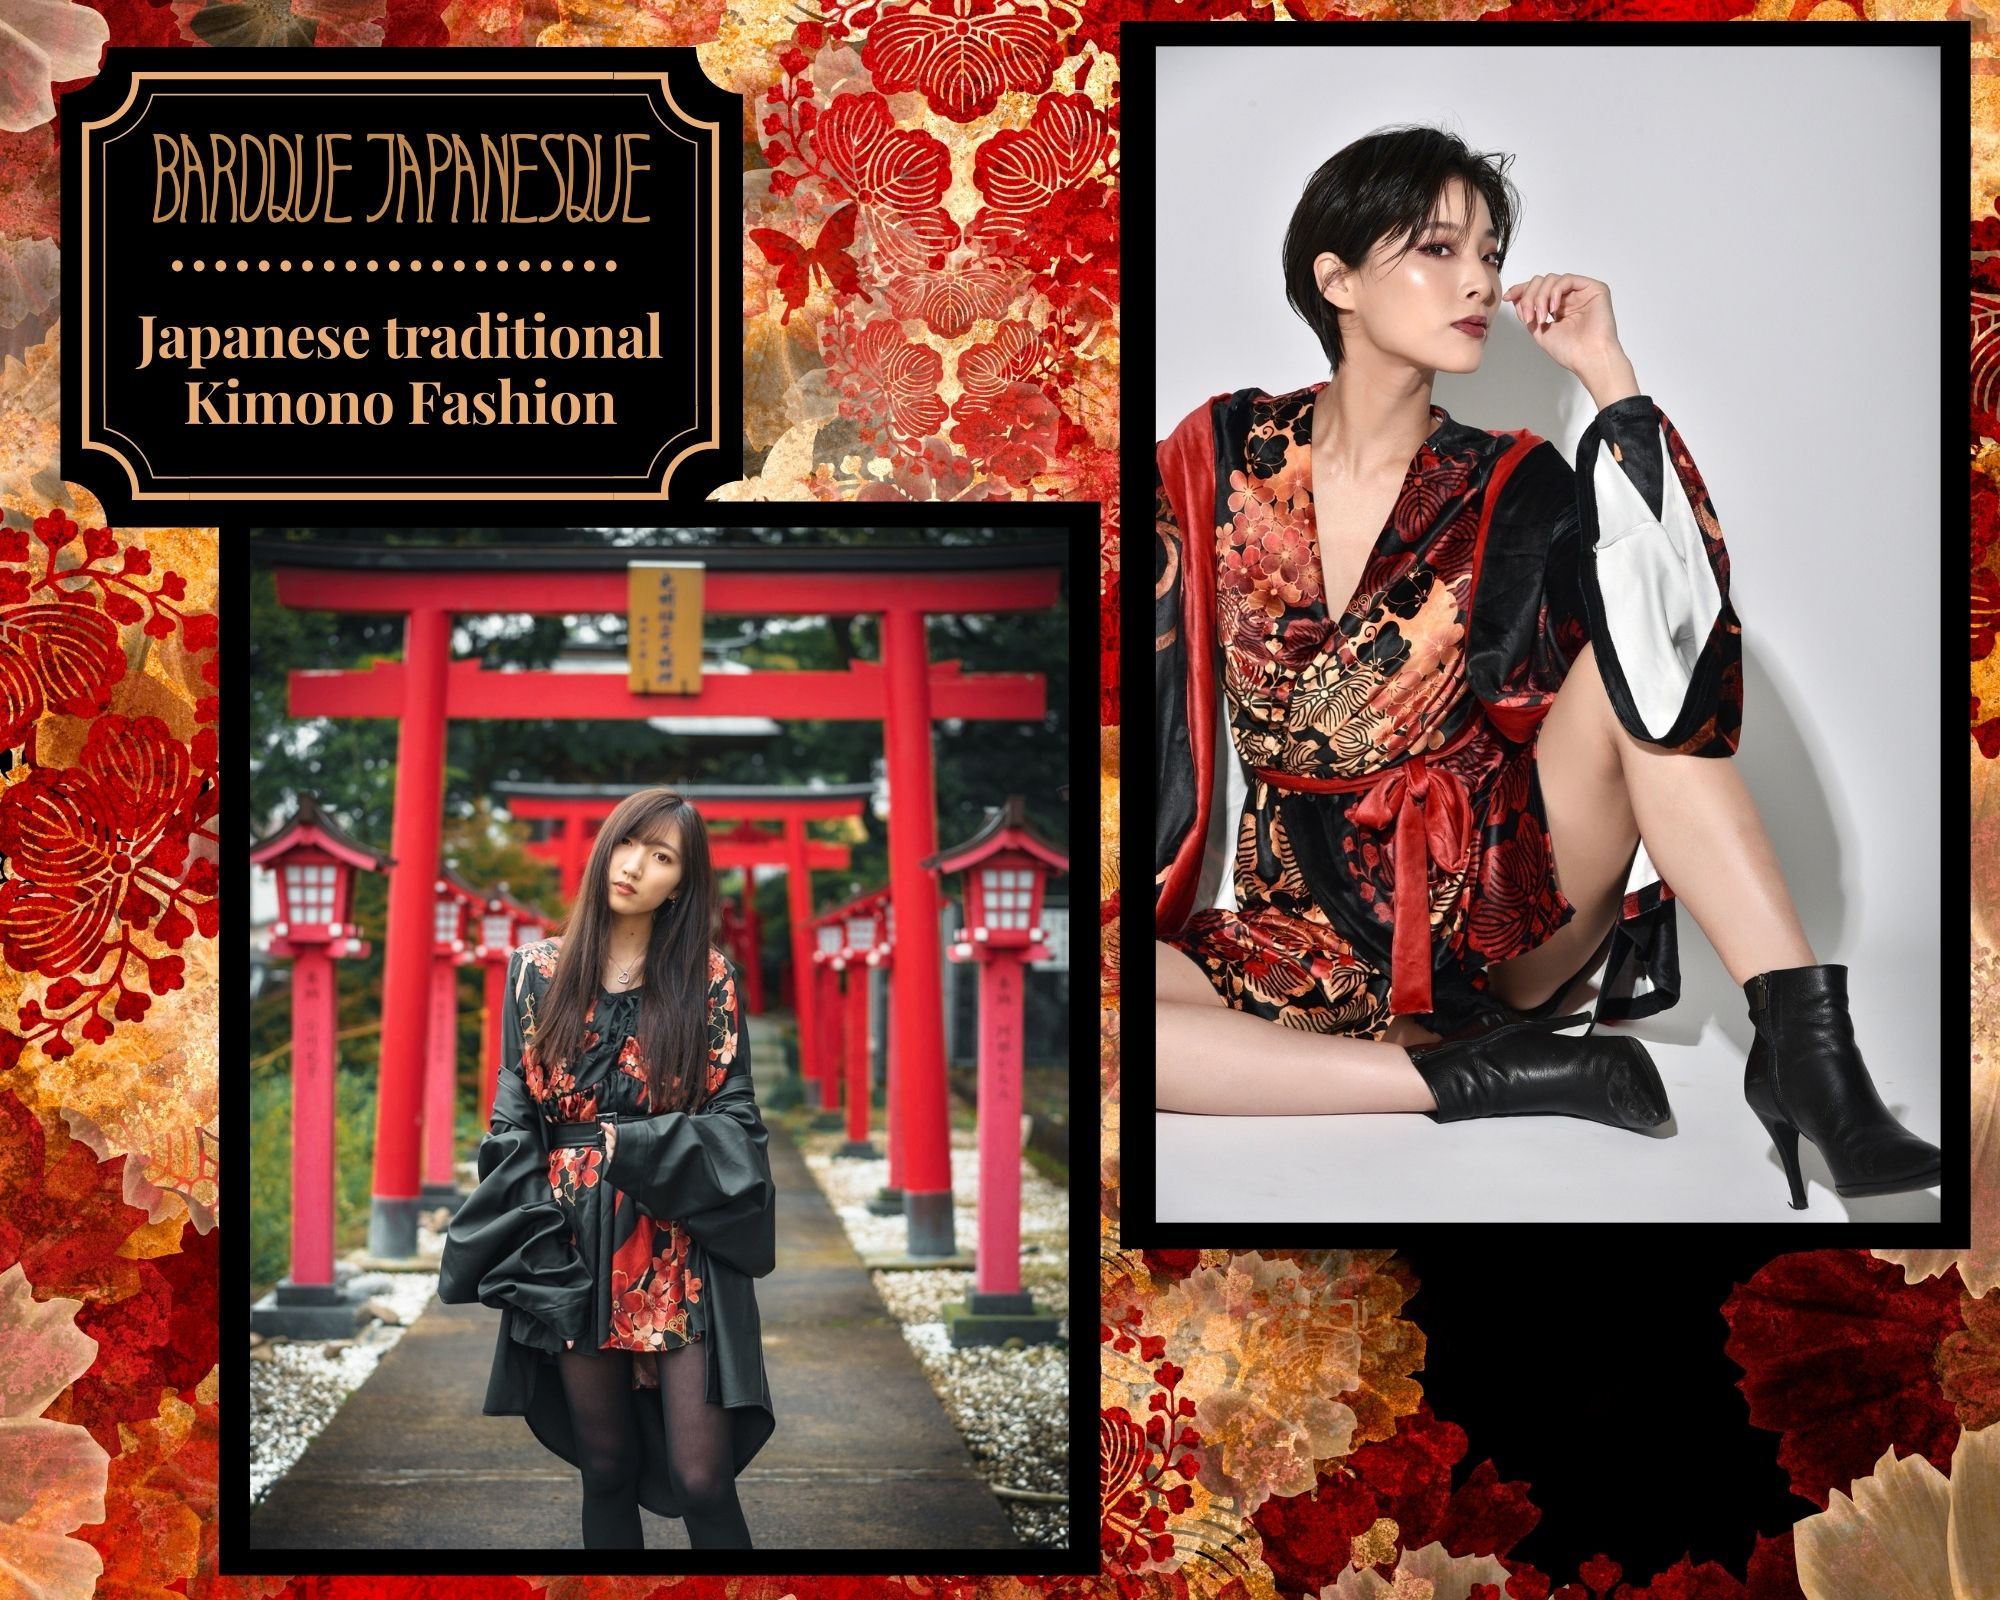 Baroque Japanesque(バロックジャパネスク)